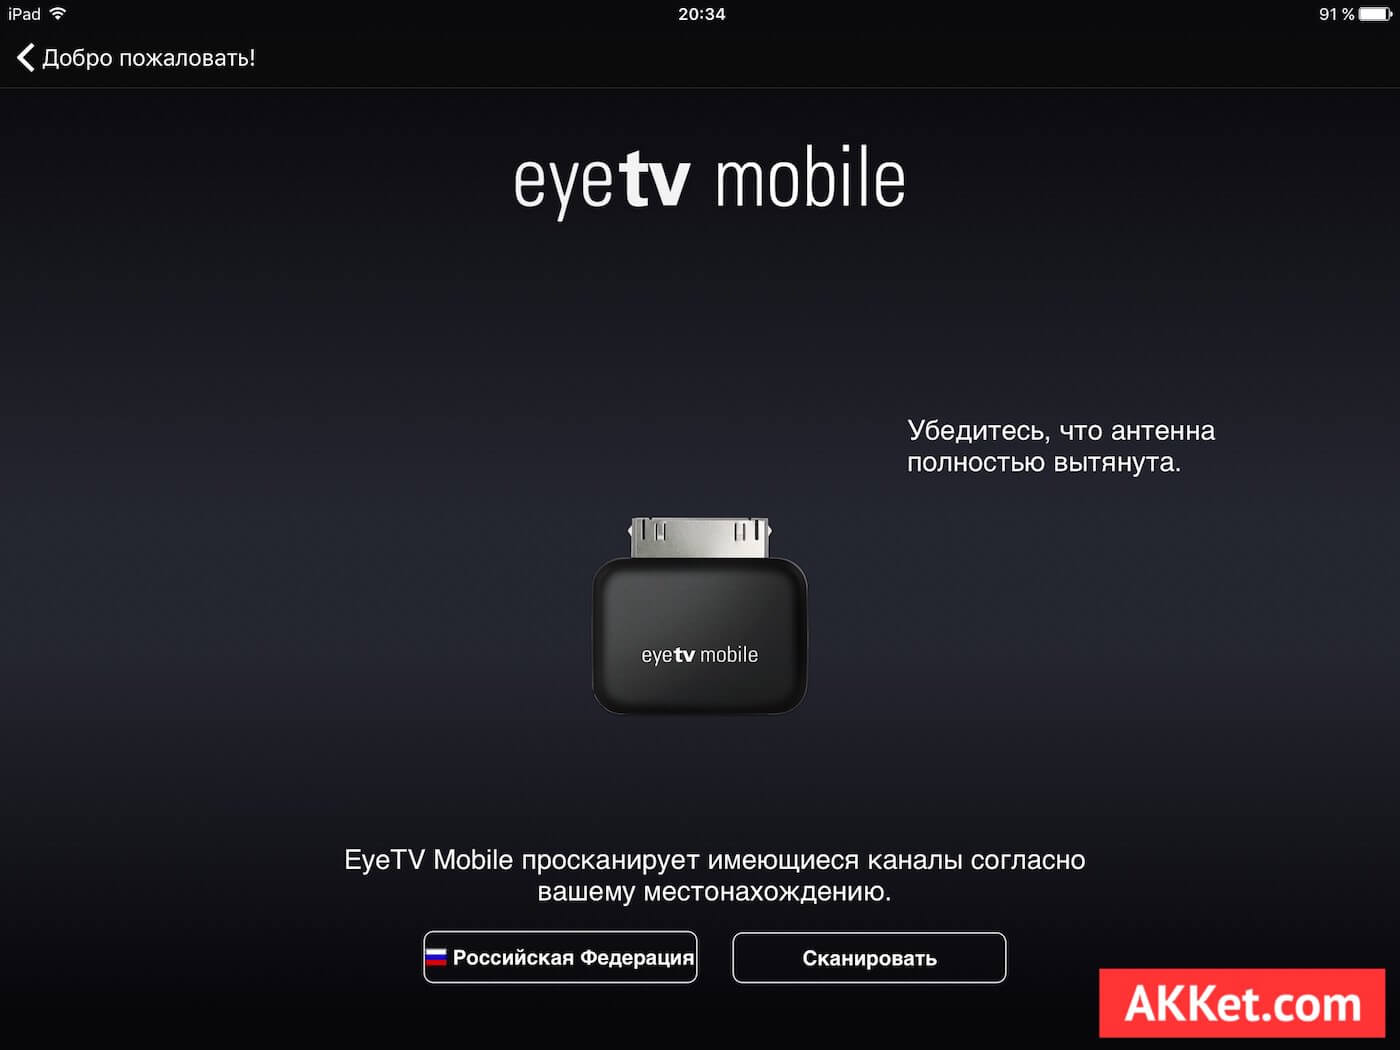 EyeTV mobile iPad iPhone Android app store 14